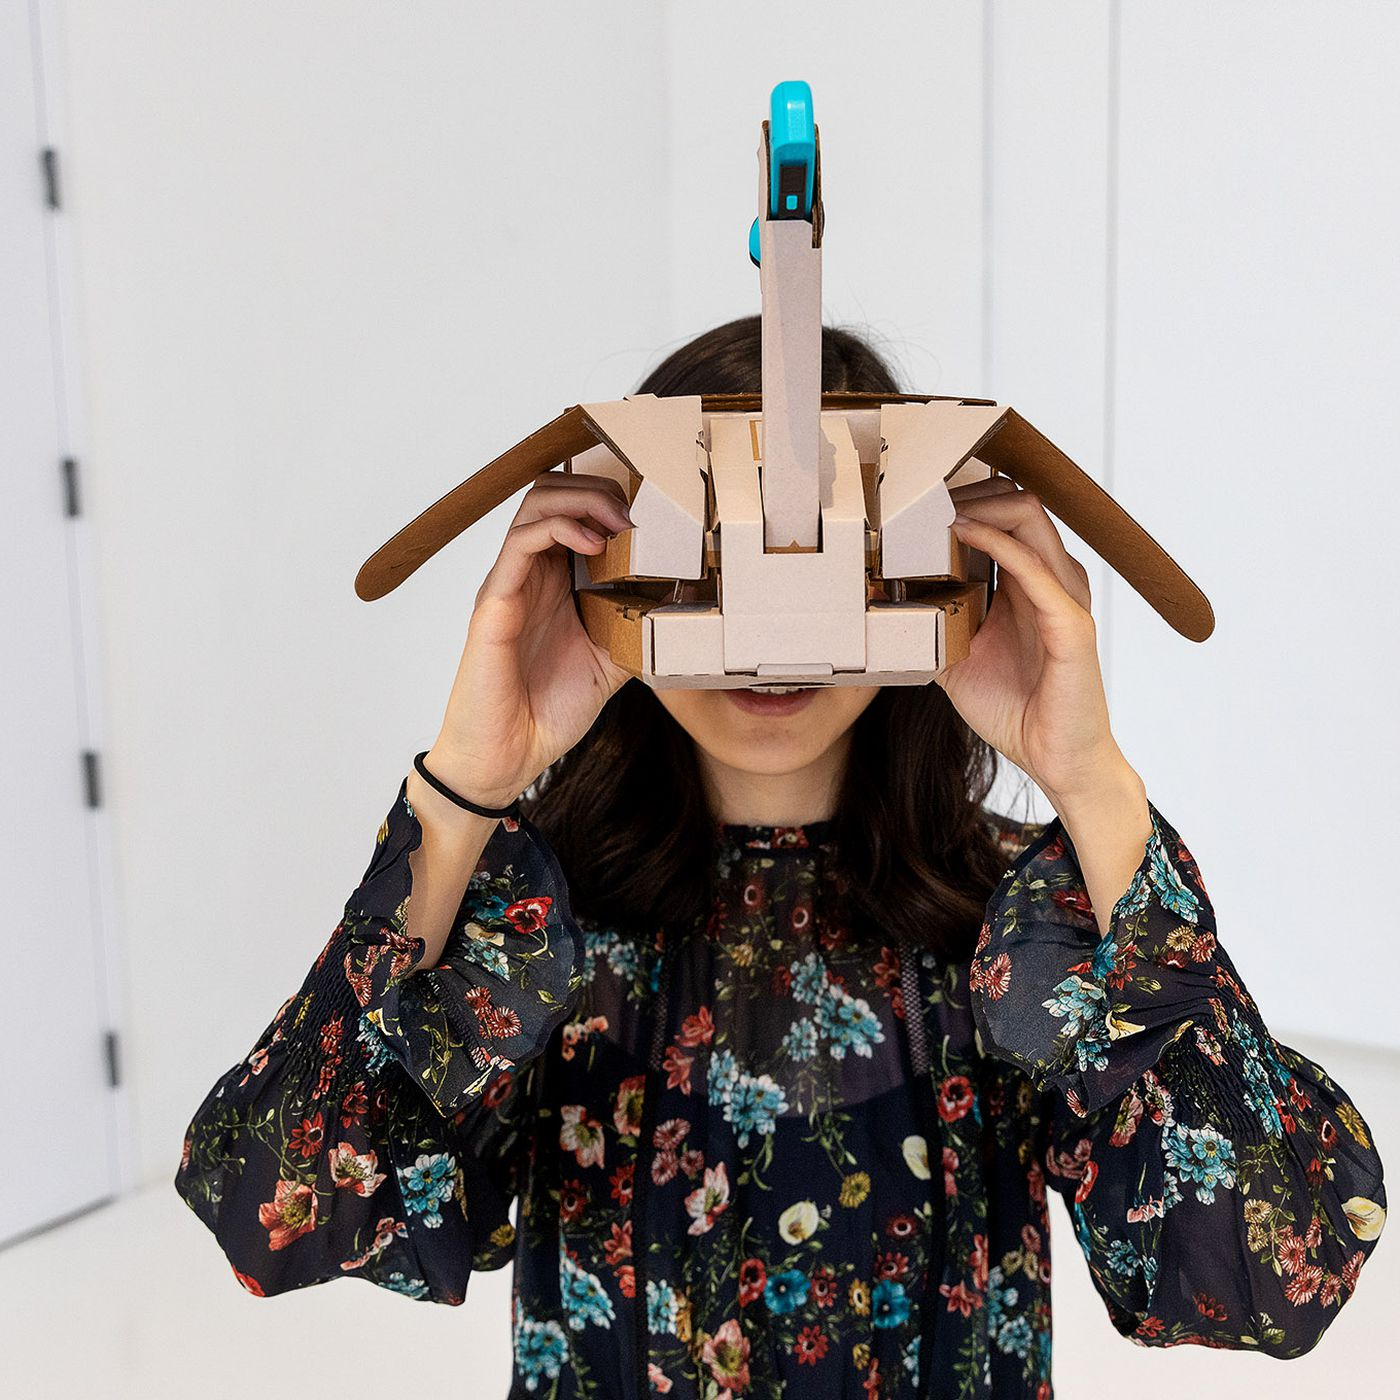 theverge.com - Dami Lee - Nintendo Labo VR hands-on: virtual reality goes DIY